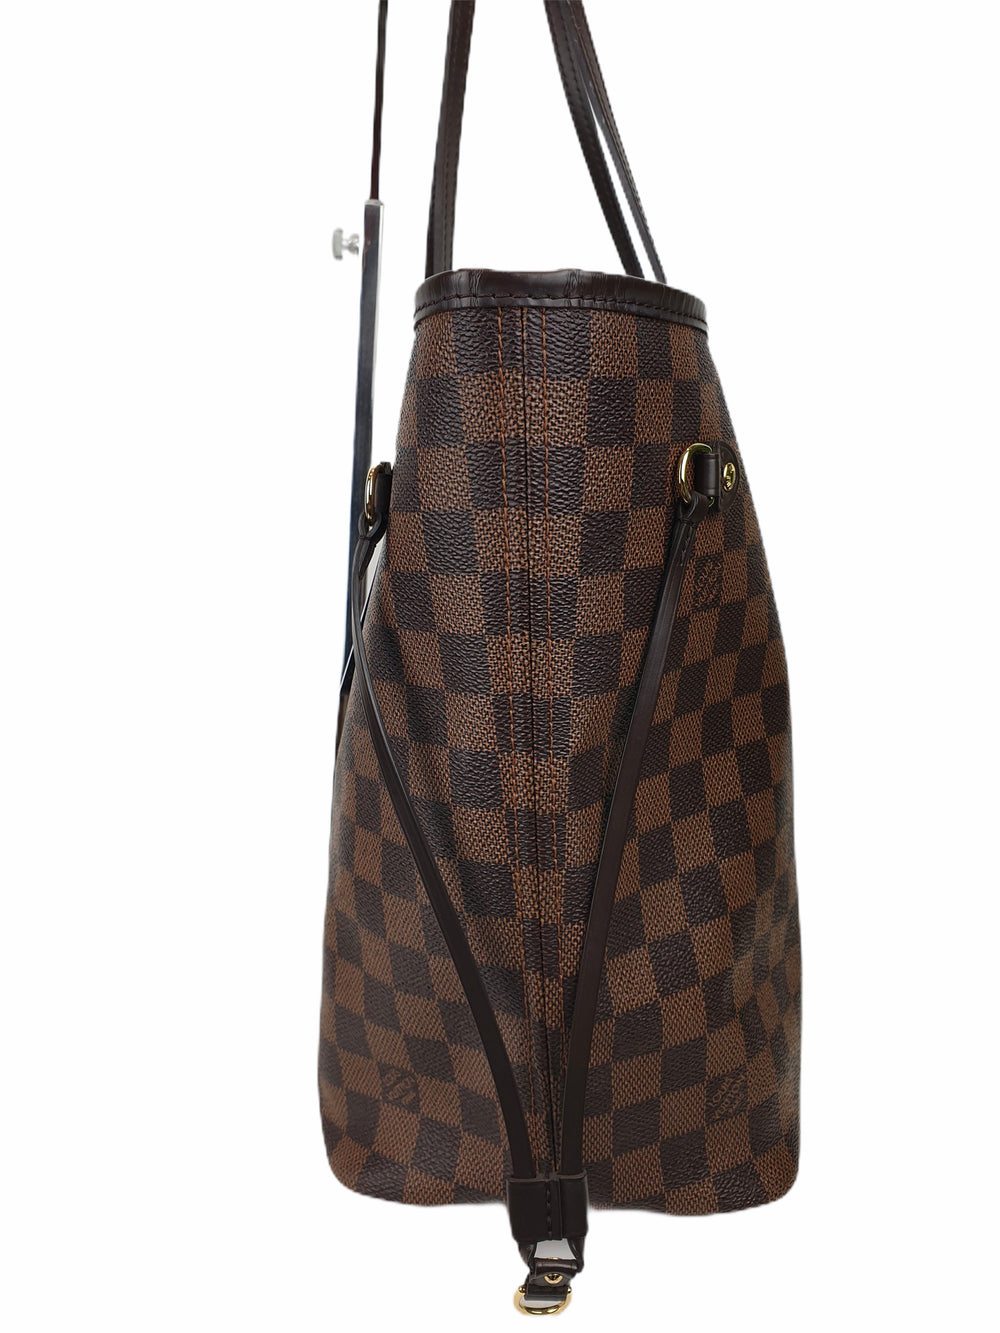 Louis Vuitton Damier MM Neverfull - As seen on Instagram 29/07/20 - Siopaella Designer Exchange